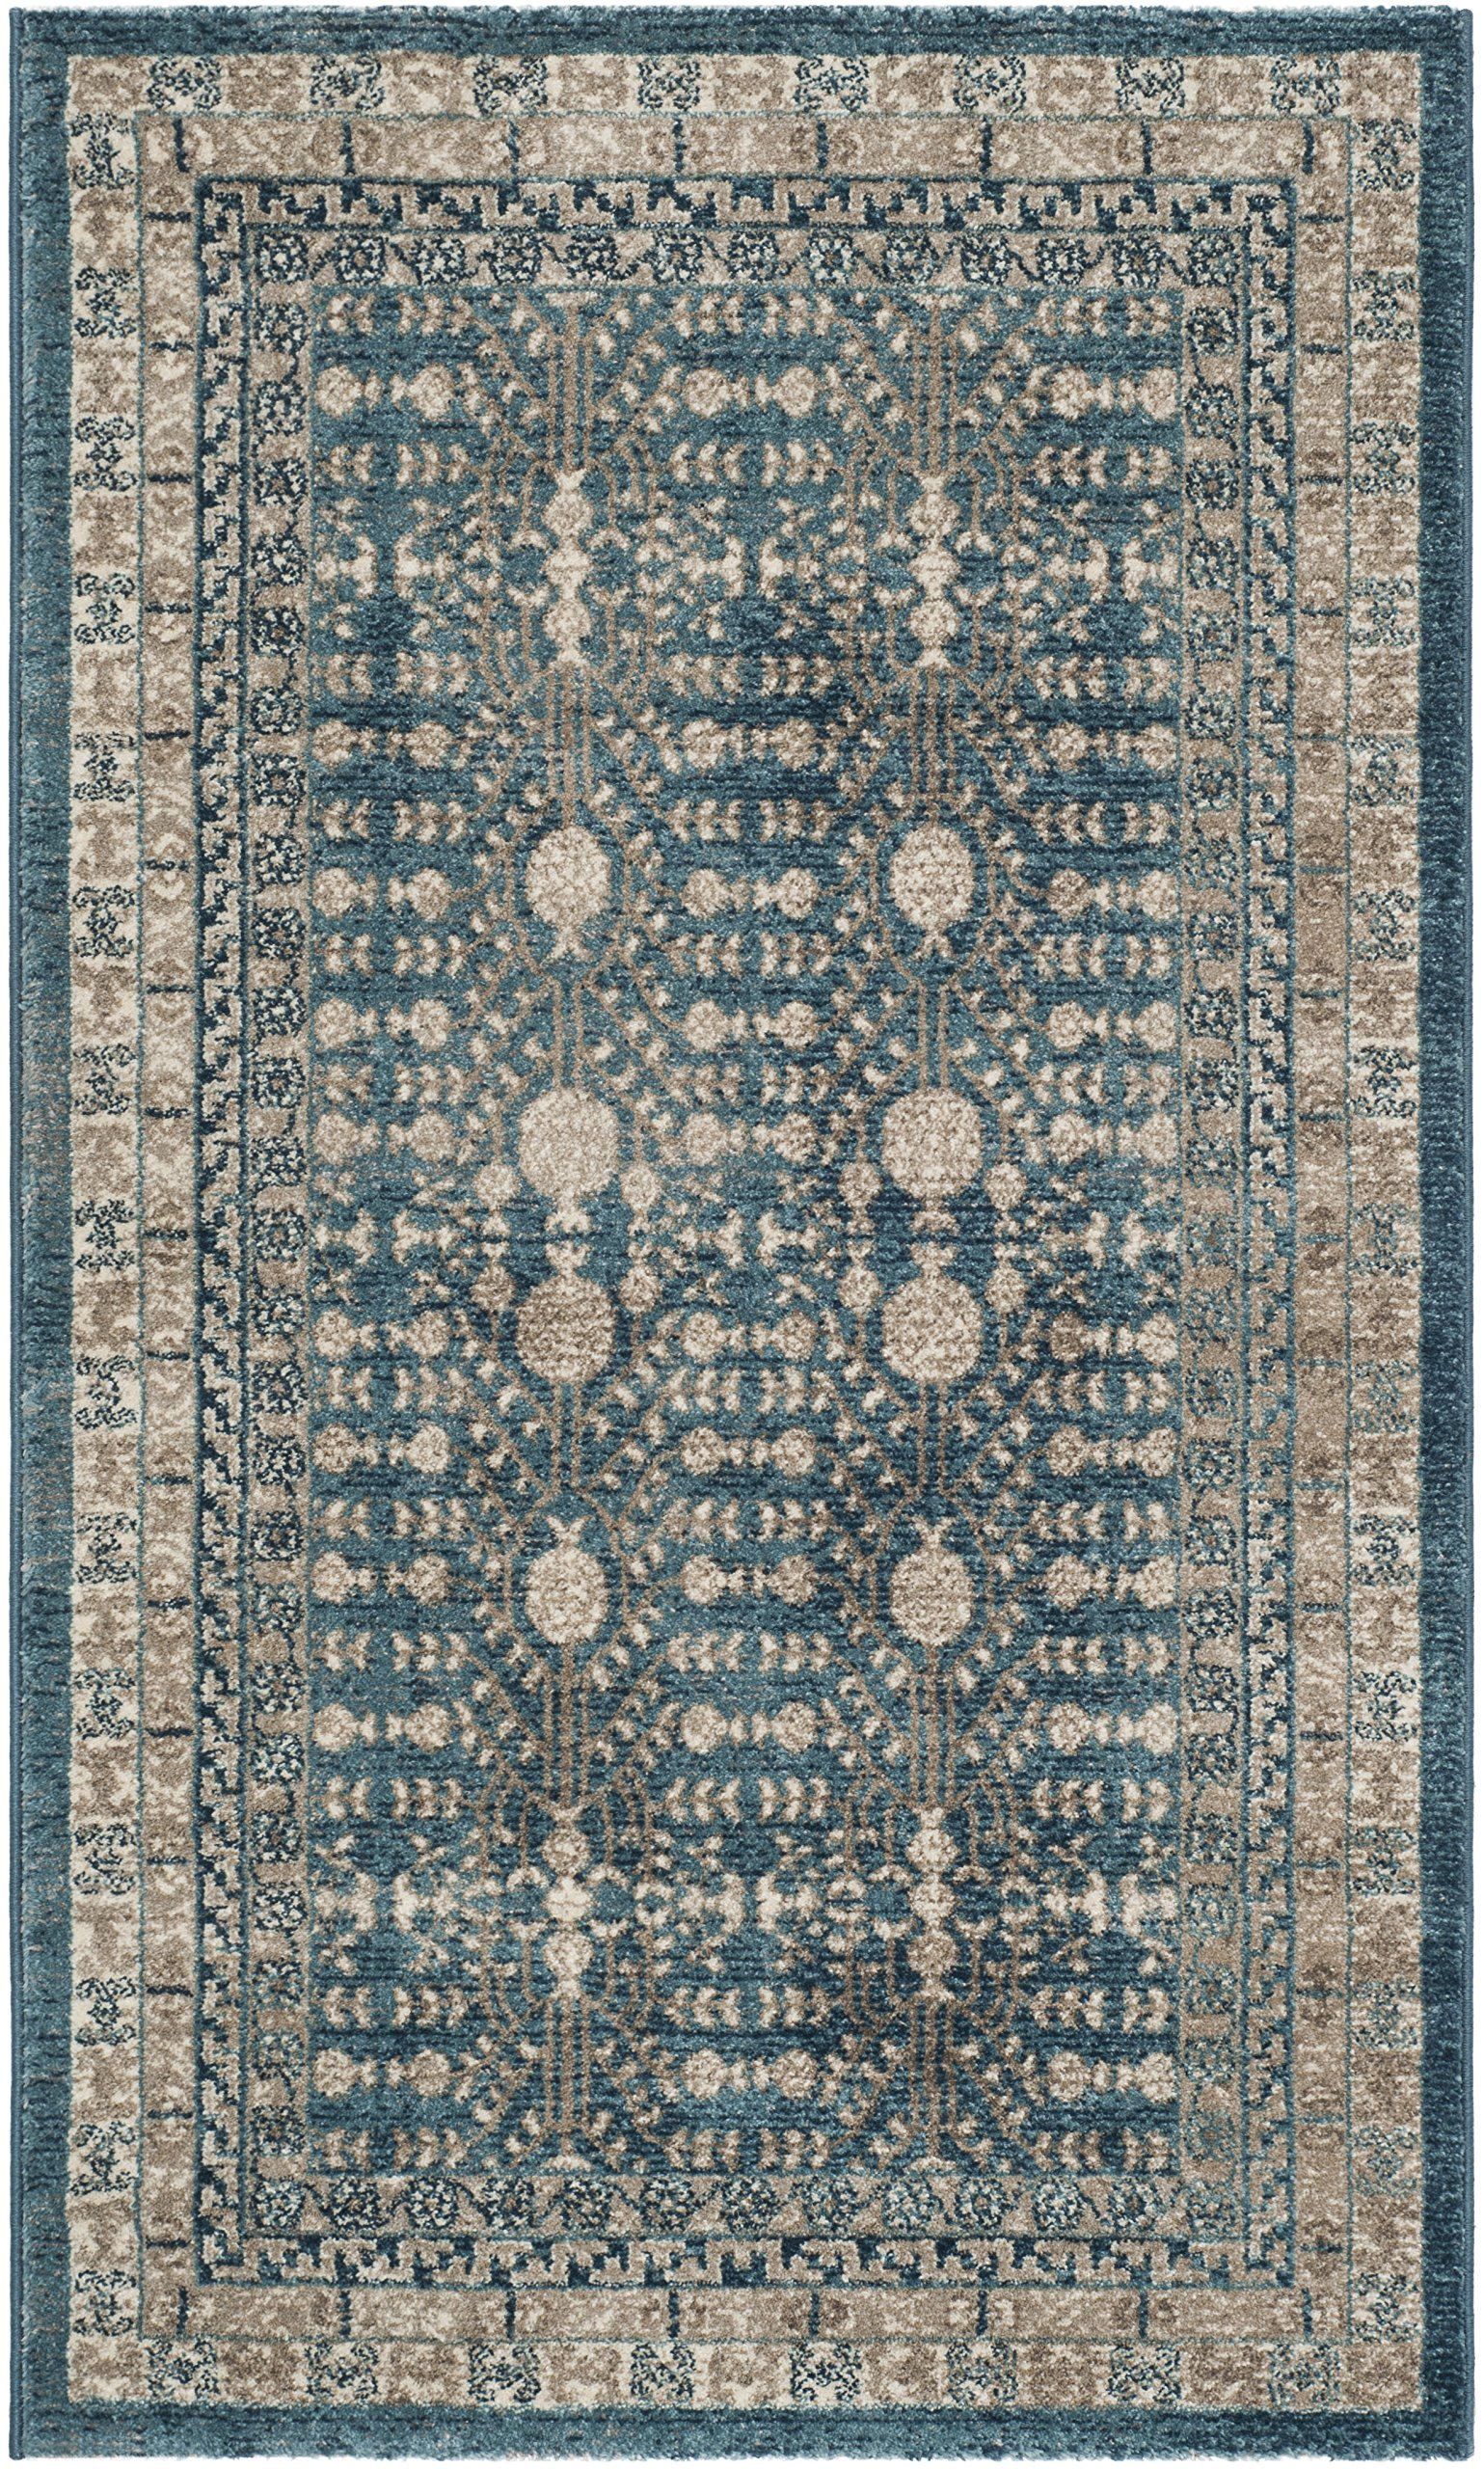 Safavieh Sofia Collection SOF376C Blue and Beige Area Rug (3' x 5') - The high-quality polypropylene pile fiber adds durability and longevity to these rugs The power loomed Construction add durability to this rug, ensuring it will be a favorite for a long time The modern style of this rug will give your room a contemporary accent - living-room-soft-furnishings, living-room, area-rugs - A1p0qCAhkQL -